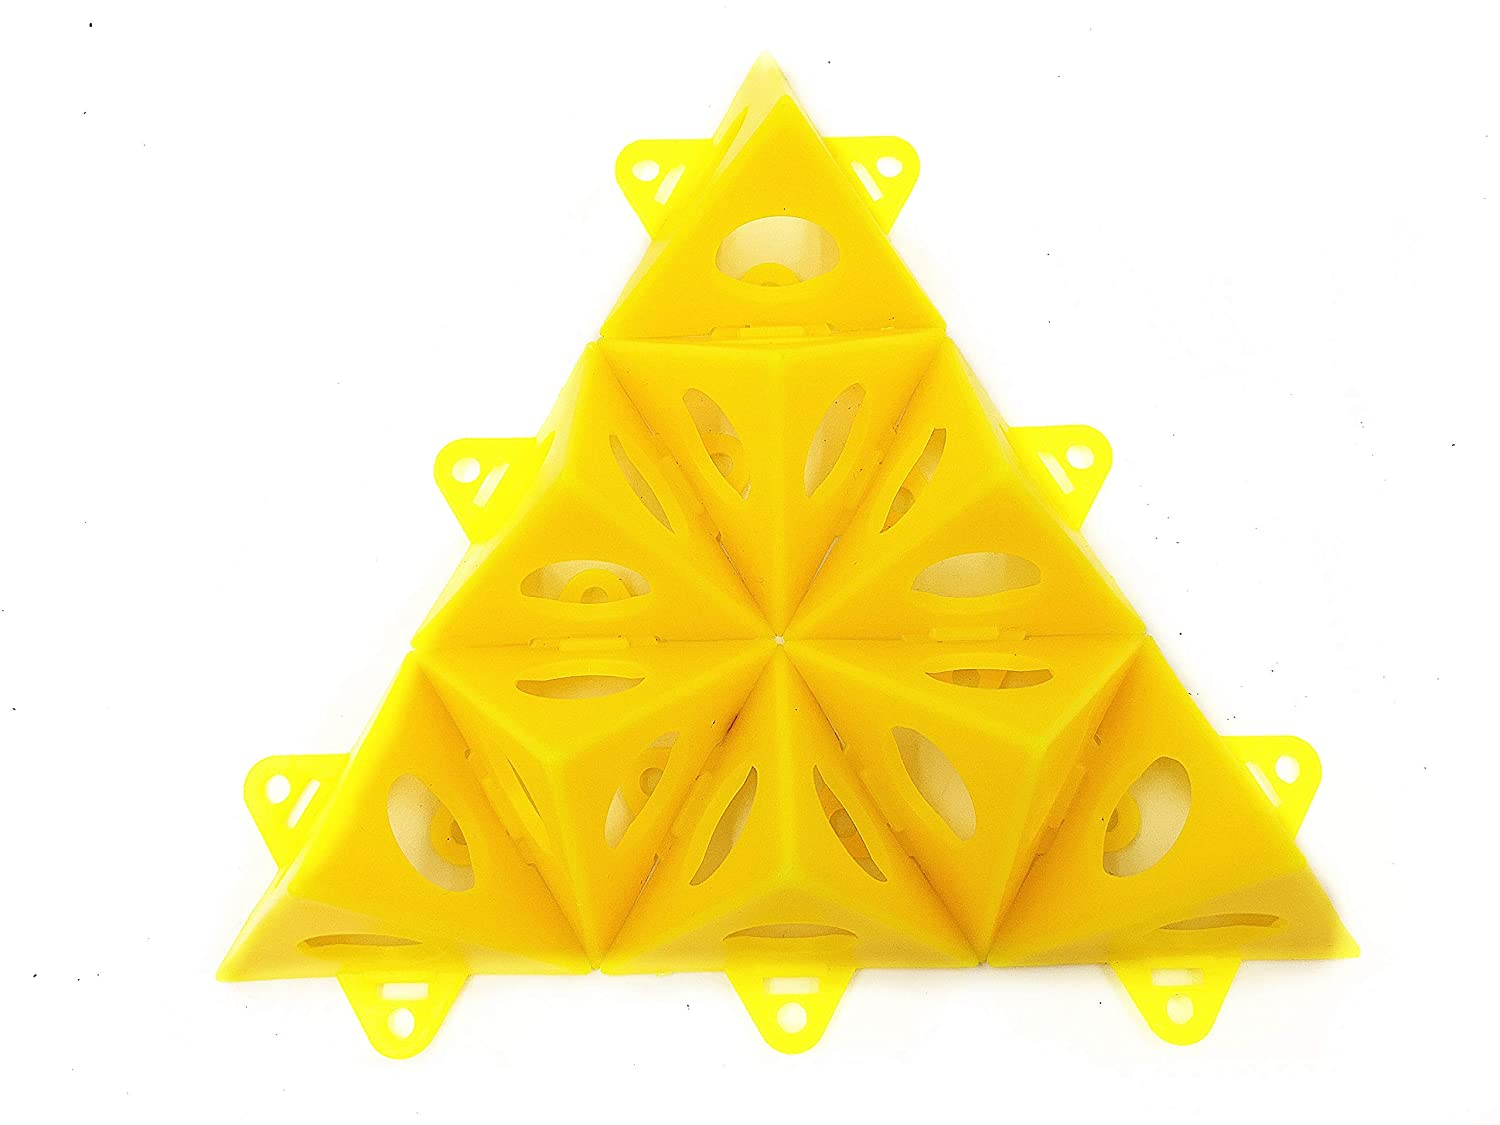 Tipu 20-Pcs Pyramid Stands, Painter Tripods, Pyramids Tab Feature, Yellow (Yellow)